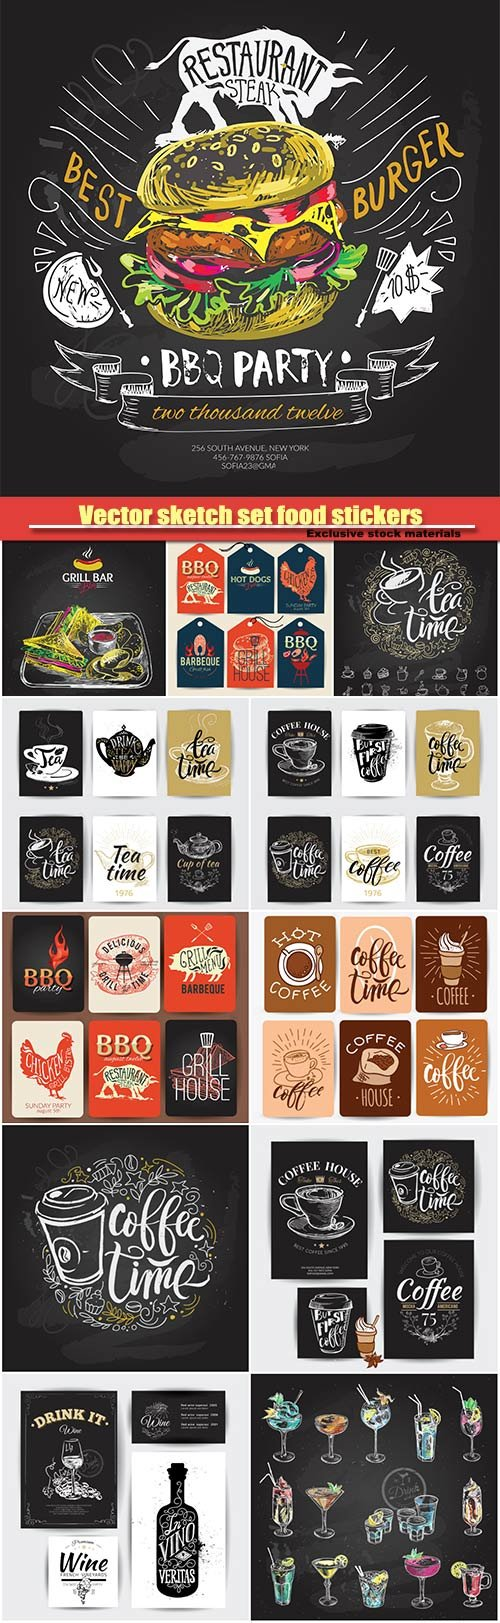 Hand drawn vector sketch set food stickers, alcoholic cocktail, coffee, barbecue label